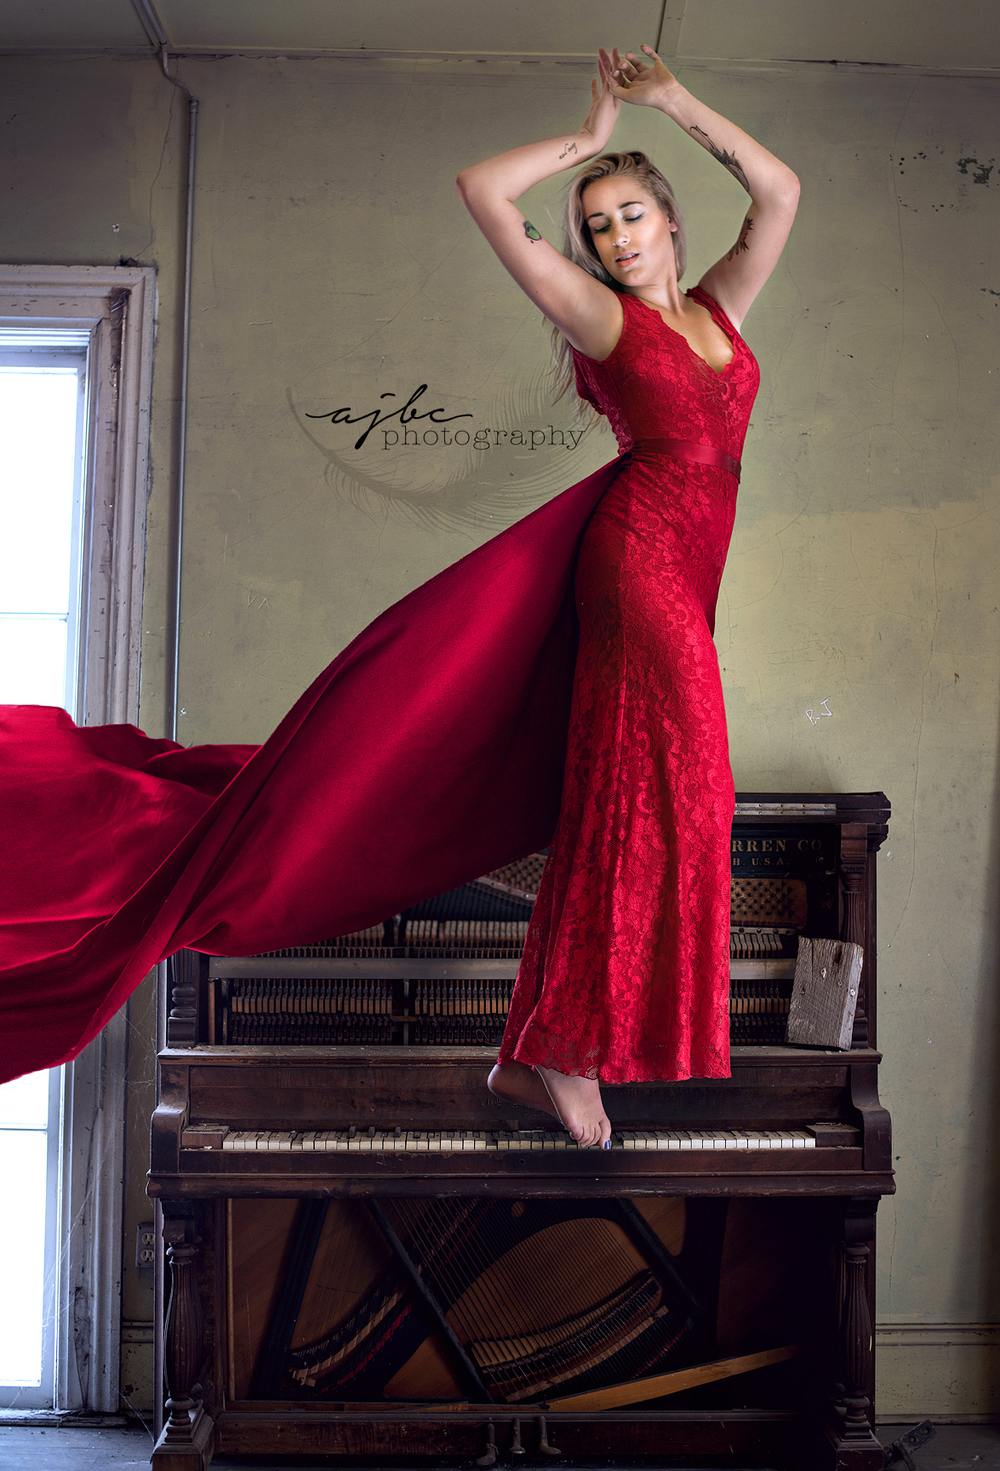 118 Piano Dancing Woman Red Dress Beauty Port Huron Michigan.jpg